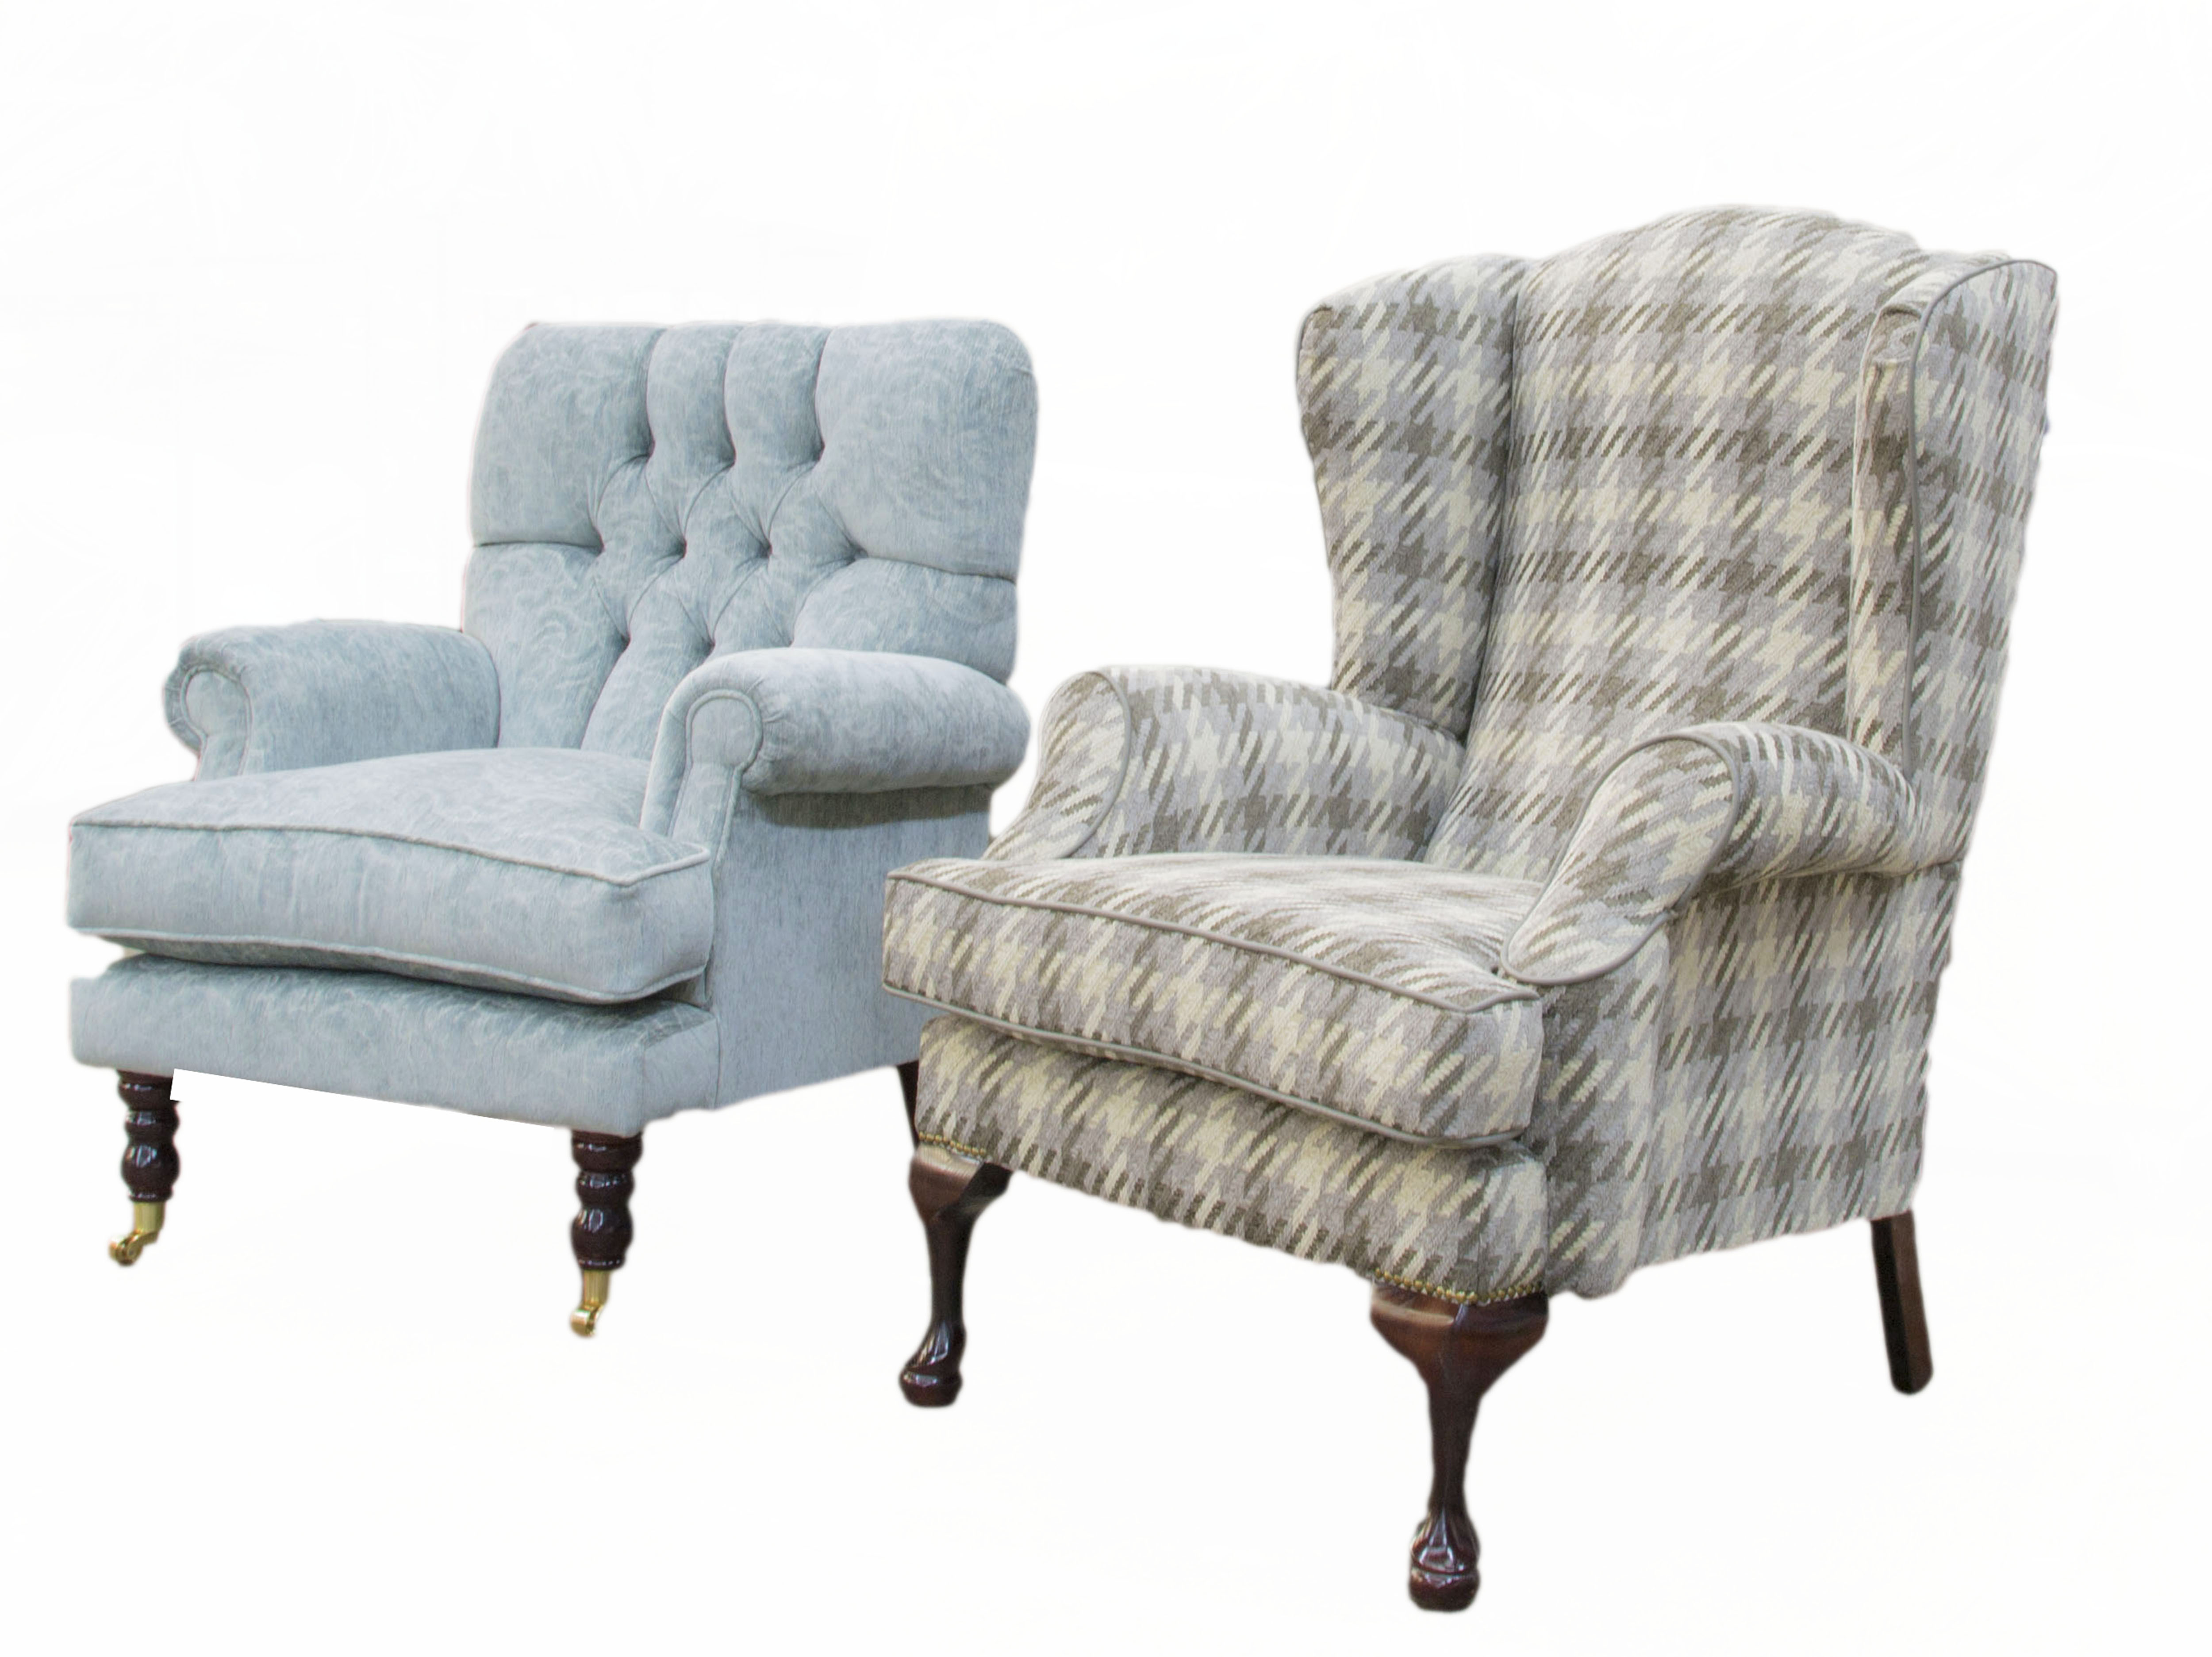 Queen anne sofas and chairs range finline furniture queen anne living room